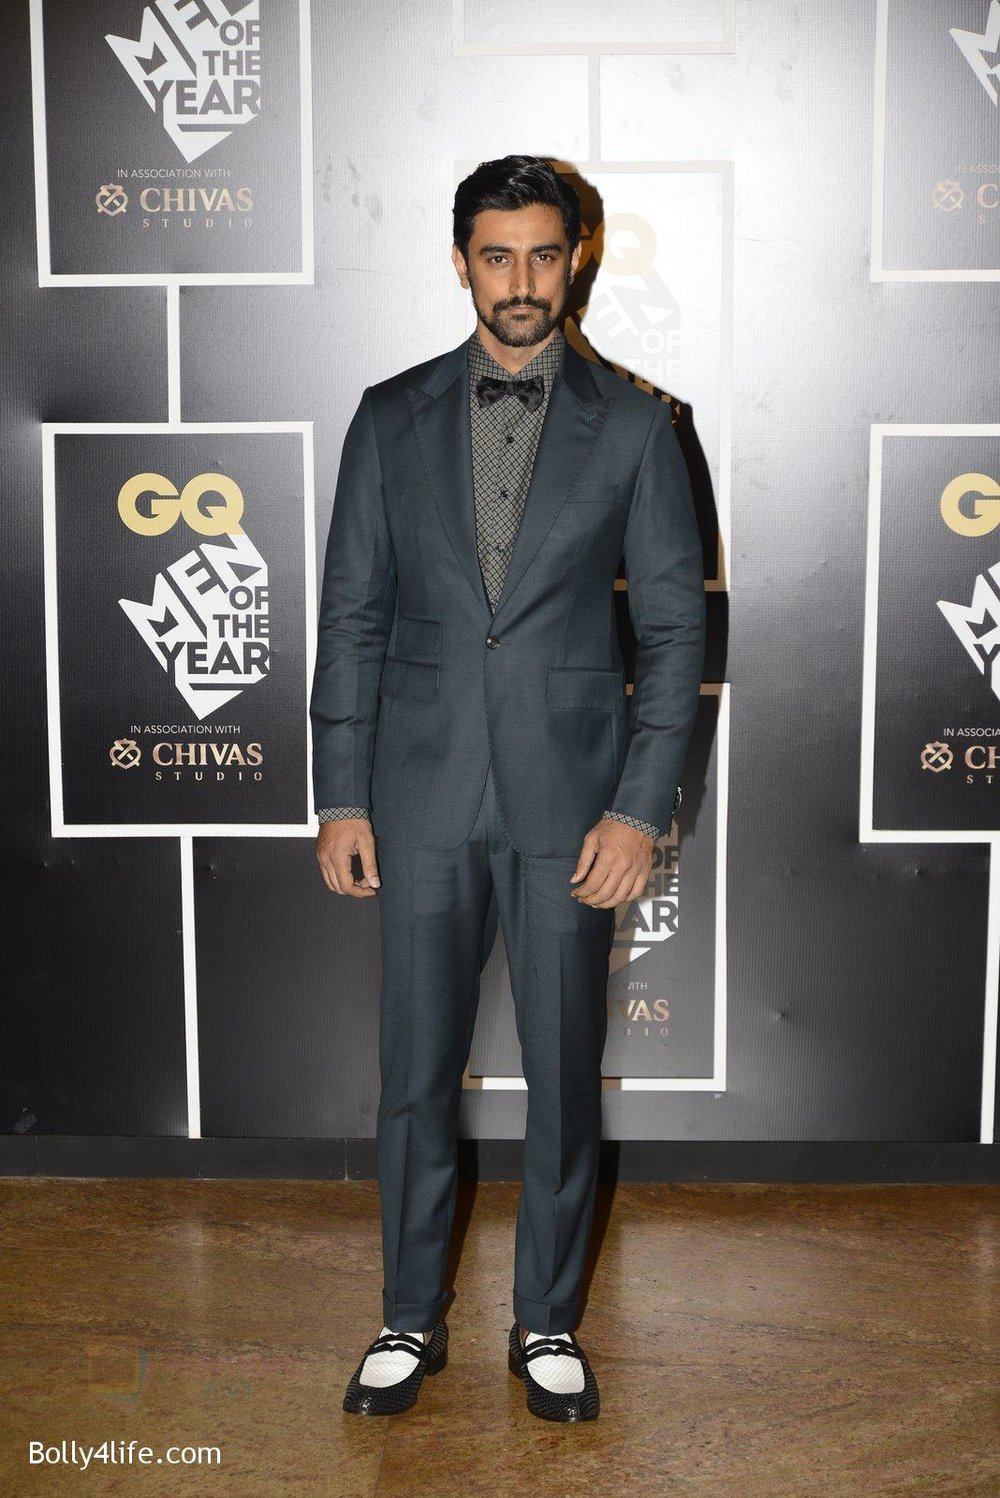 Kunal-Kapoor-at-GQ-MEN-OF-THE-YEAR-on-27th-Sept-2016-1032.jpg